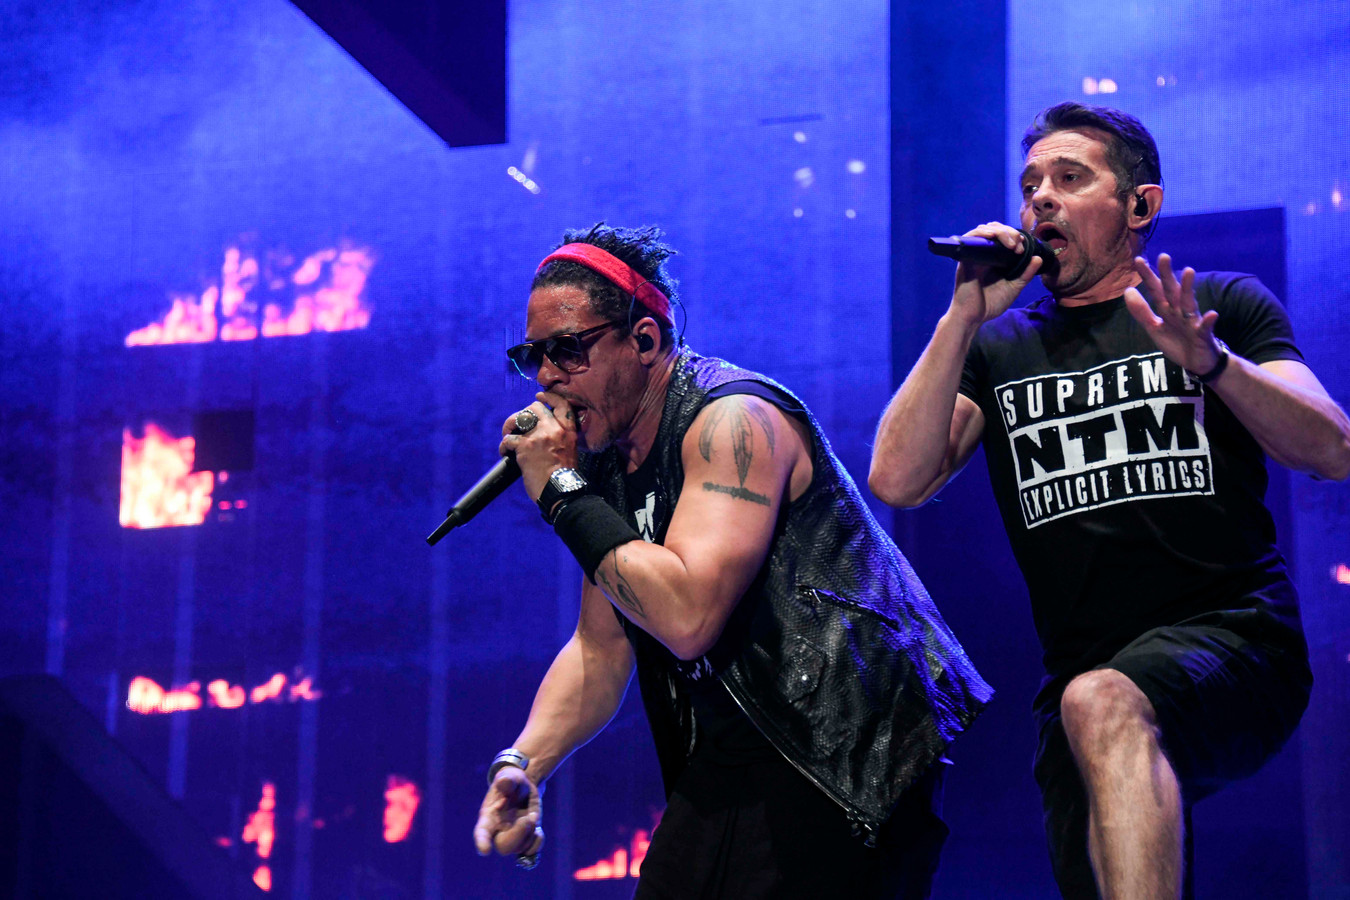 French singers Joey Starr (L) and Kool Shen (R) from the French band NTM perform on stage during the 31st Eurockeennes rock music festival in Belfort, eastern France, on July 4, 2019. (Photo by SEBASTIEN BOZON / AFP)